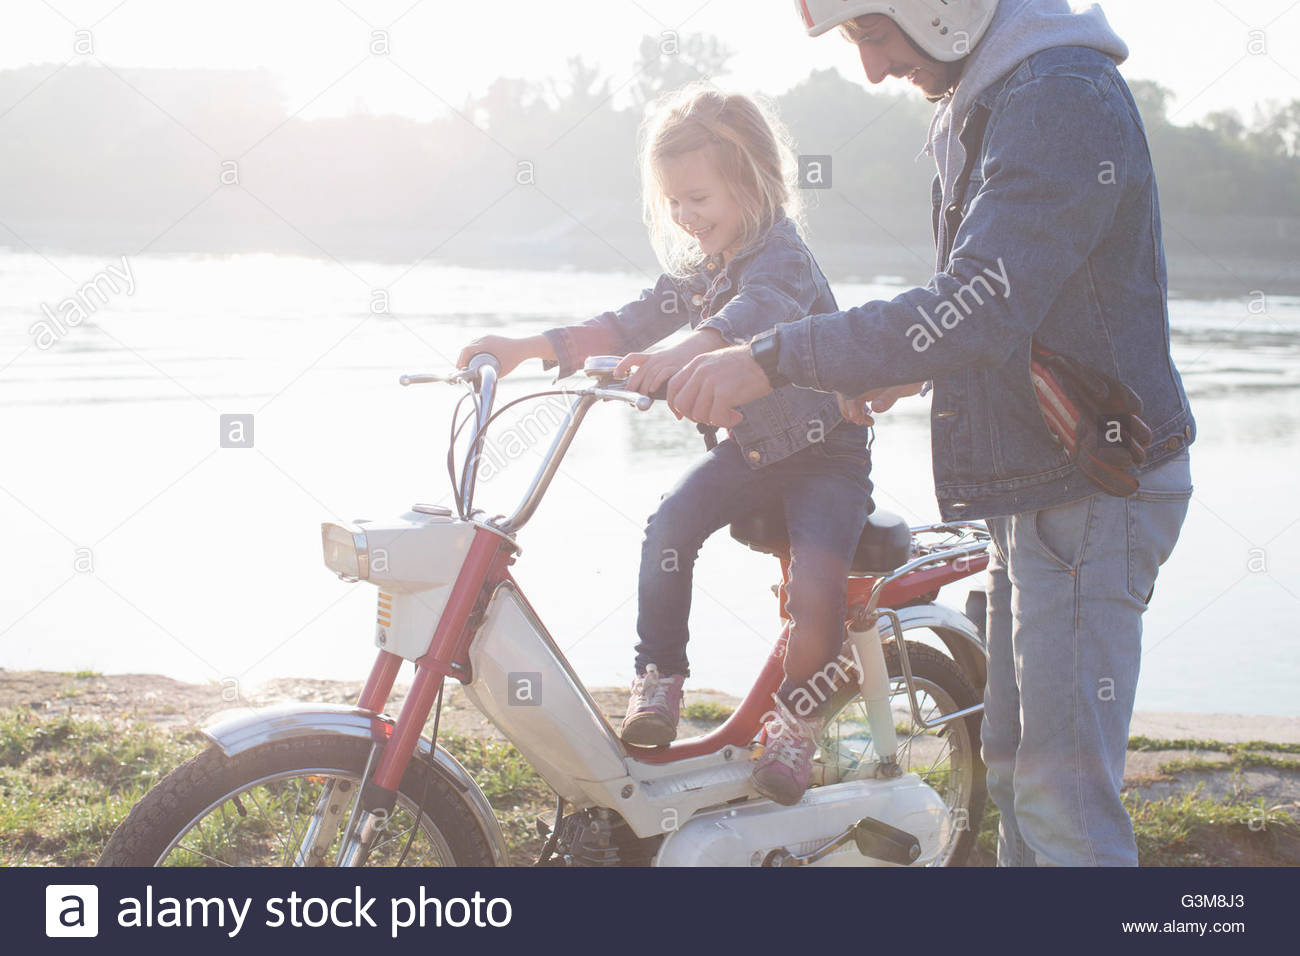 Young girl sitting on father's moped, father standing beside her, beside lake - Stock Image